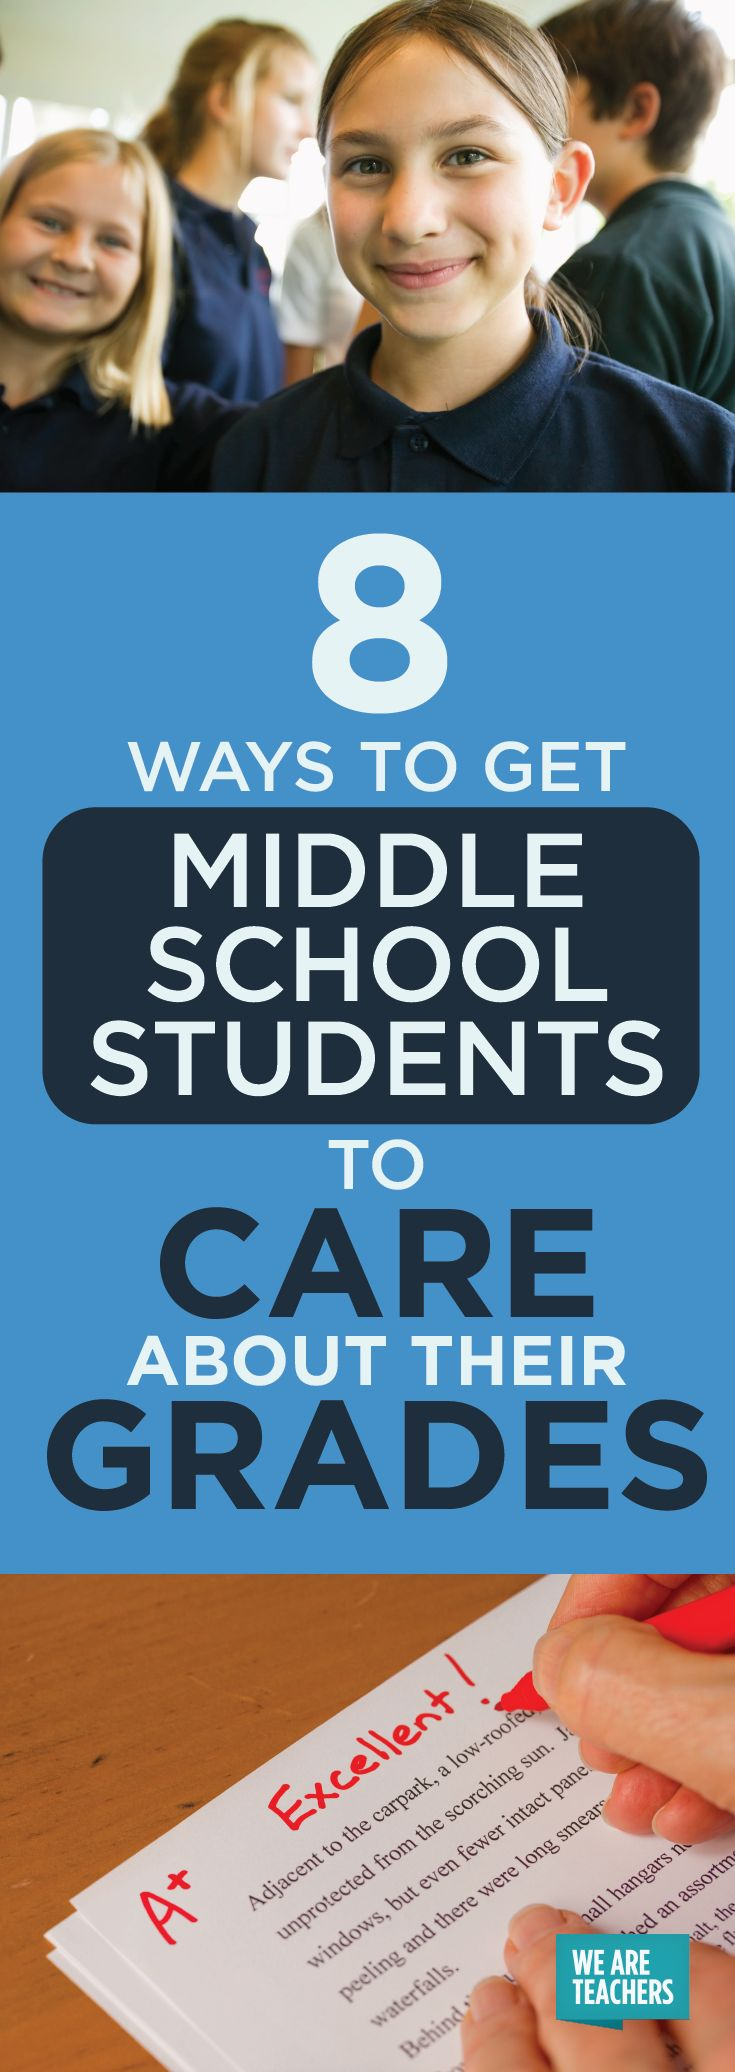 8 Ways to Get Middle School Students to Care About Their Grades - WeAreTeachers